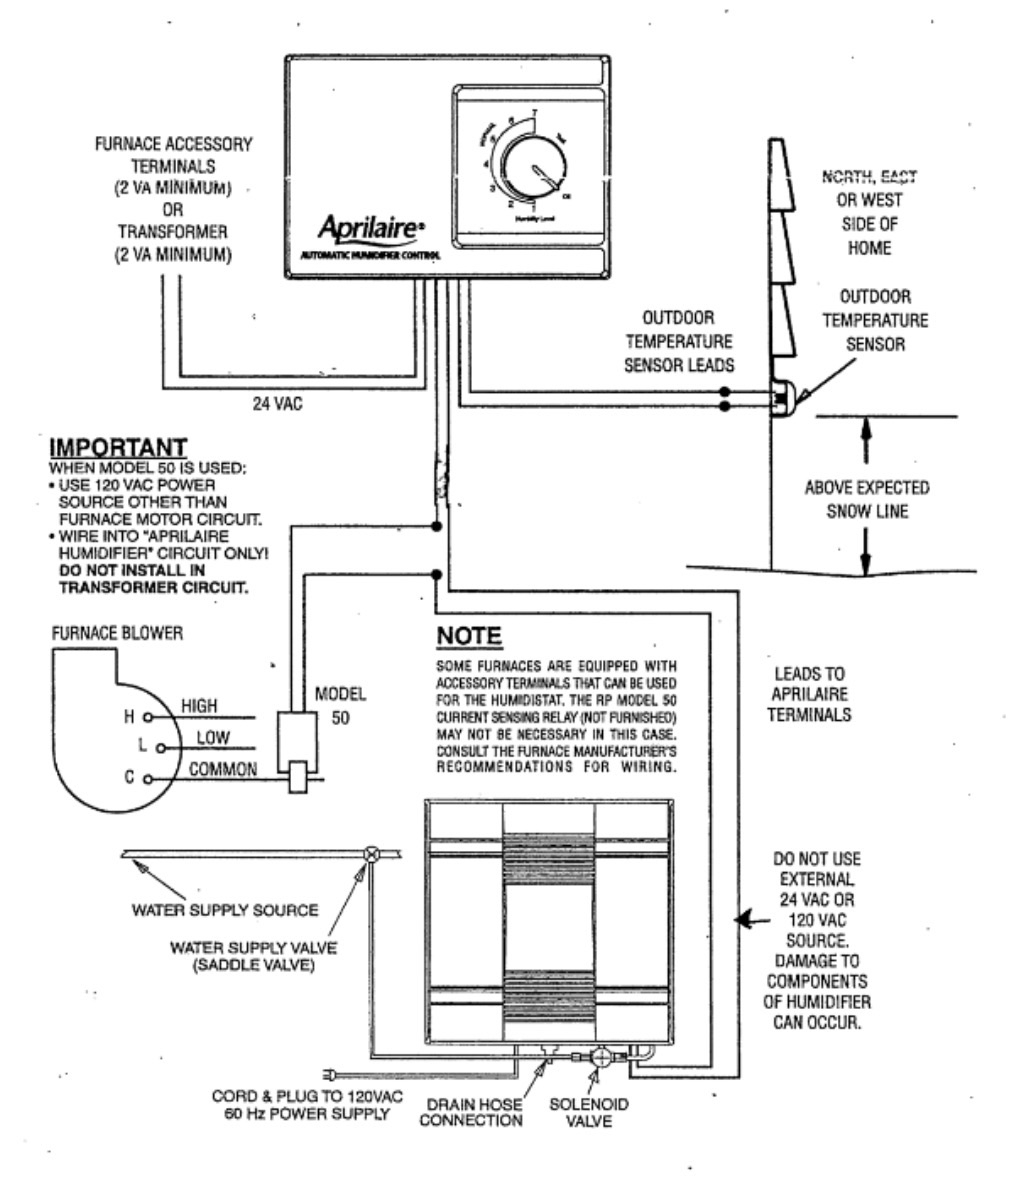 ritetemp 8022 thermostat wiring diagram gm factory radio free for you trane xv95 gallery codes